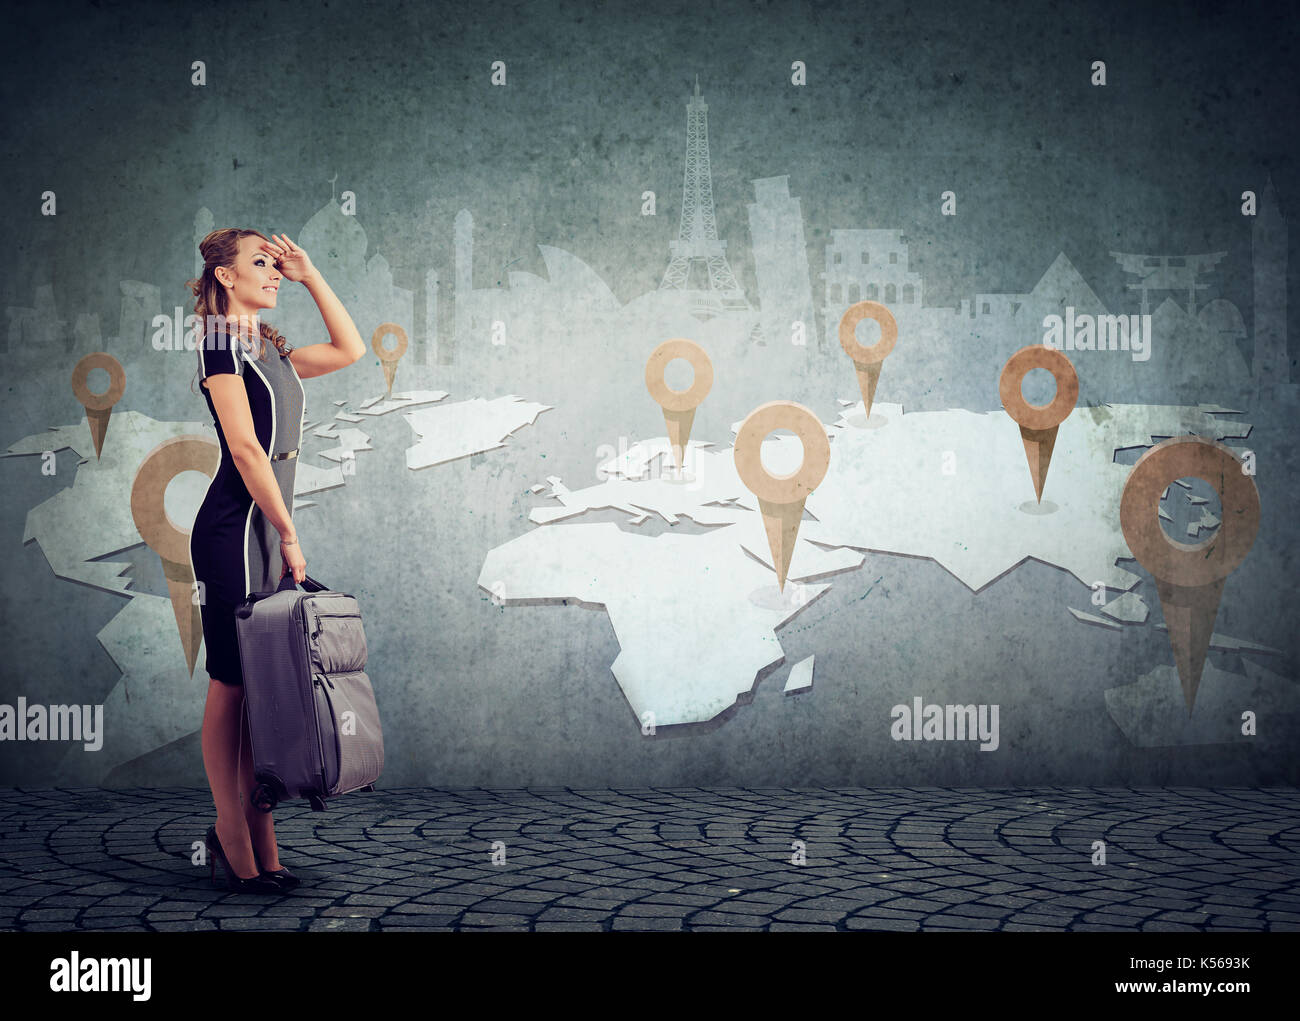 Woman with suitcase ready to explore the world on landmarks map background - Stock Image